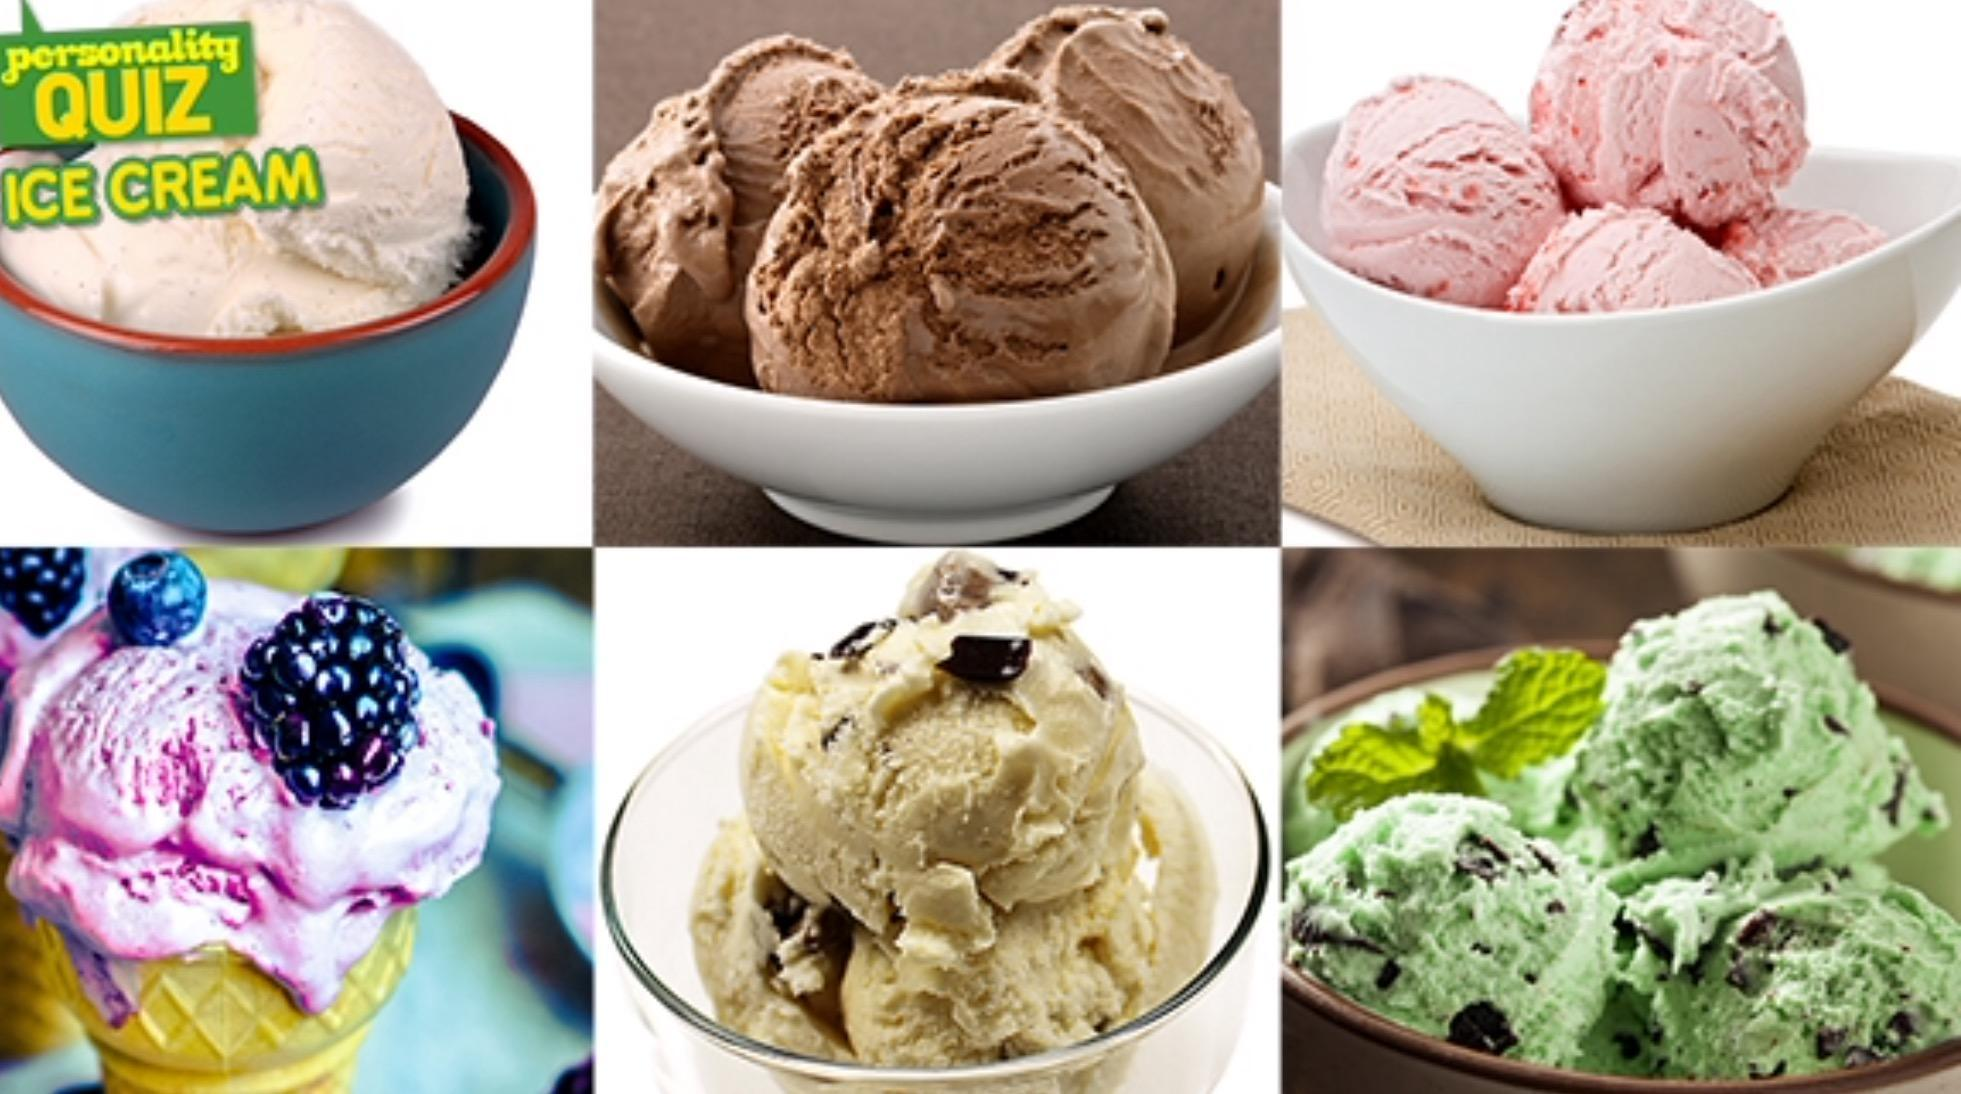 What ice cream are you? (1)